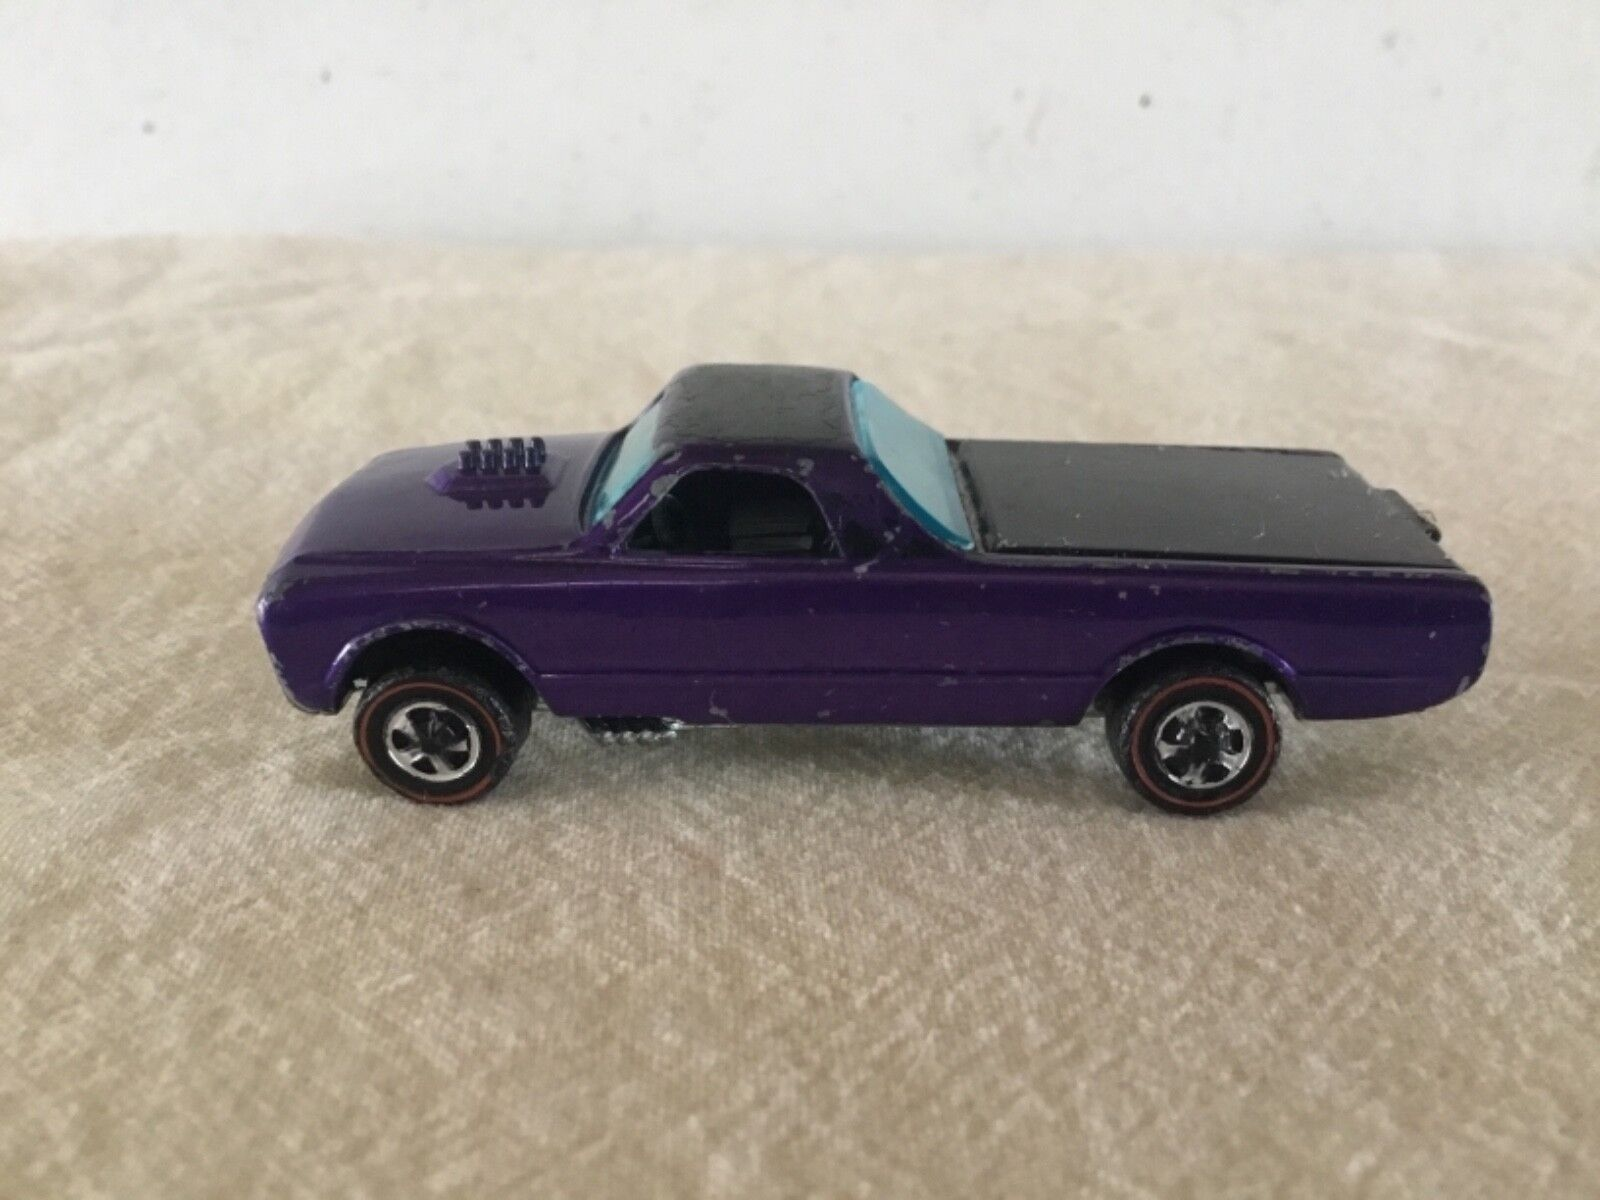 Hot Wheels custom fleet side metallic purple red line u.s.